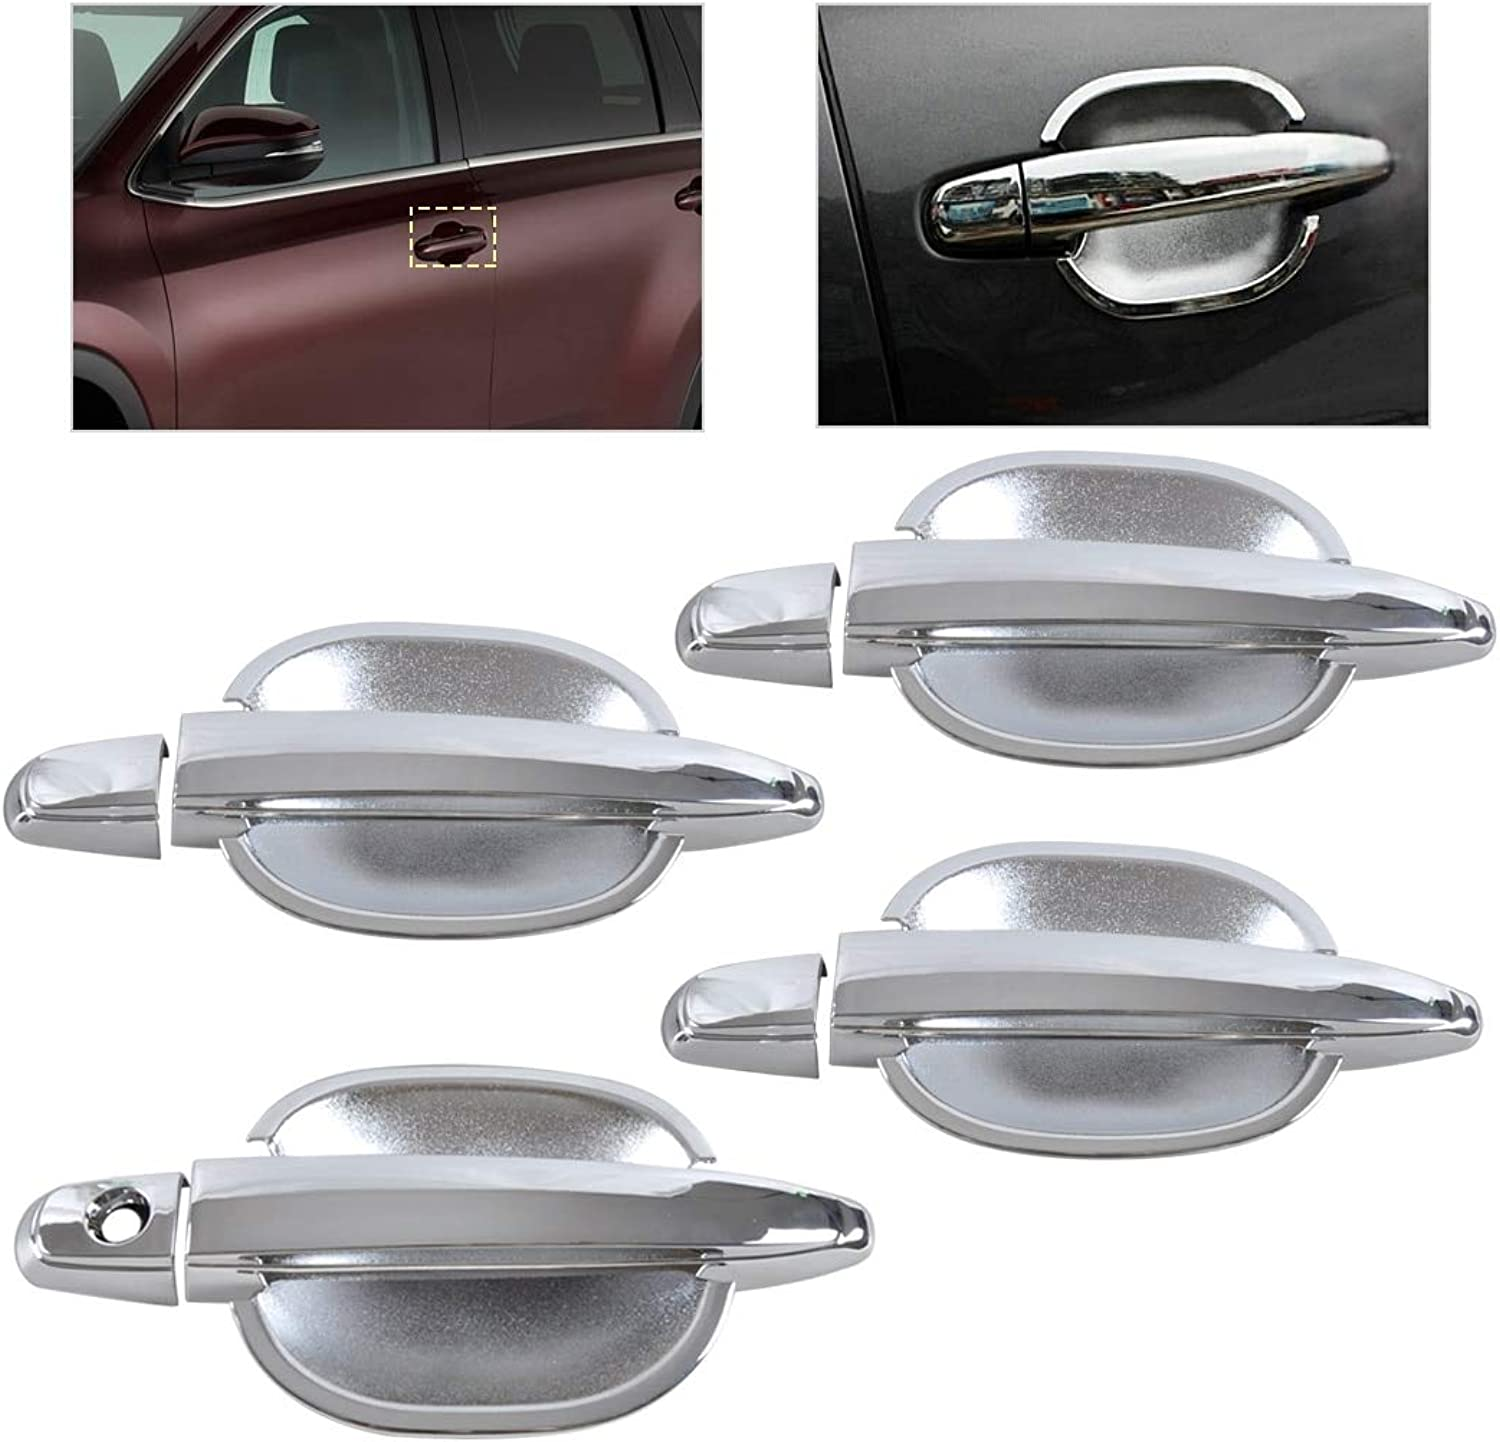 StarShopinc  ABS Chrome Door Handle Cover + Cup Bowl Cover Trim for Toyota Camry Highlander Avalon 4Runner Sienna Tacoma 2008